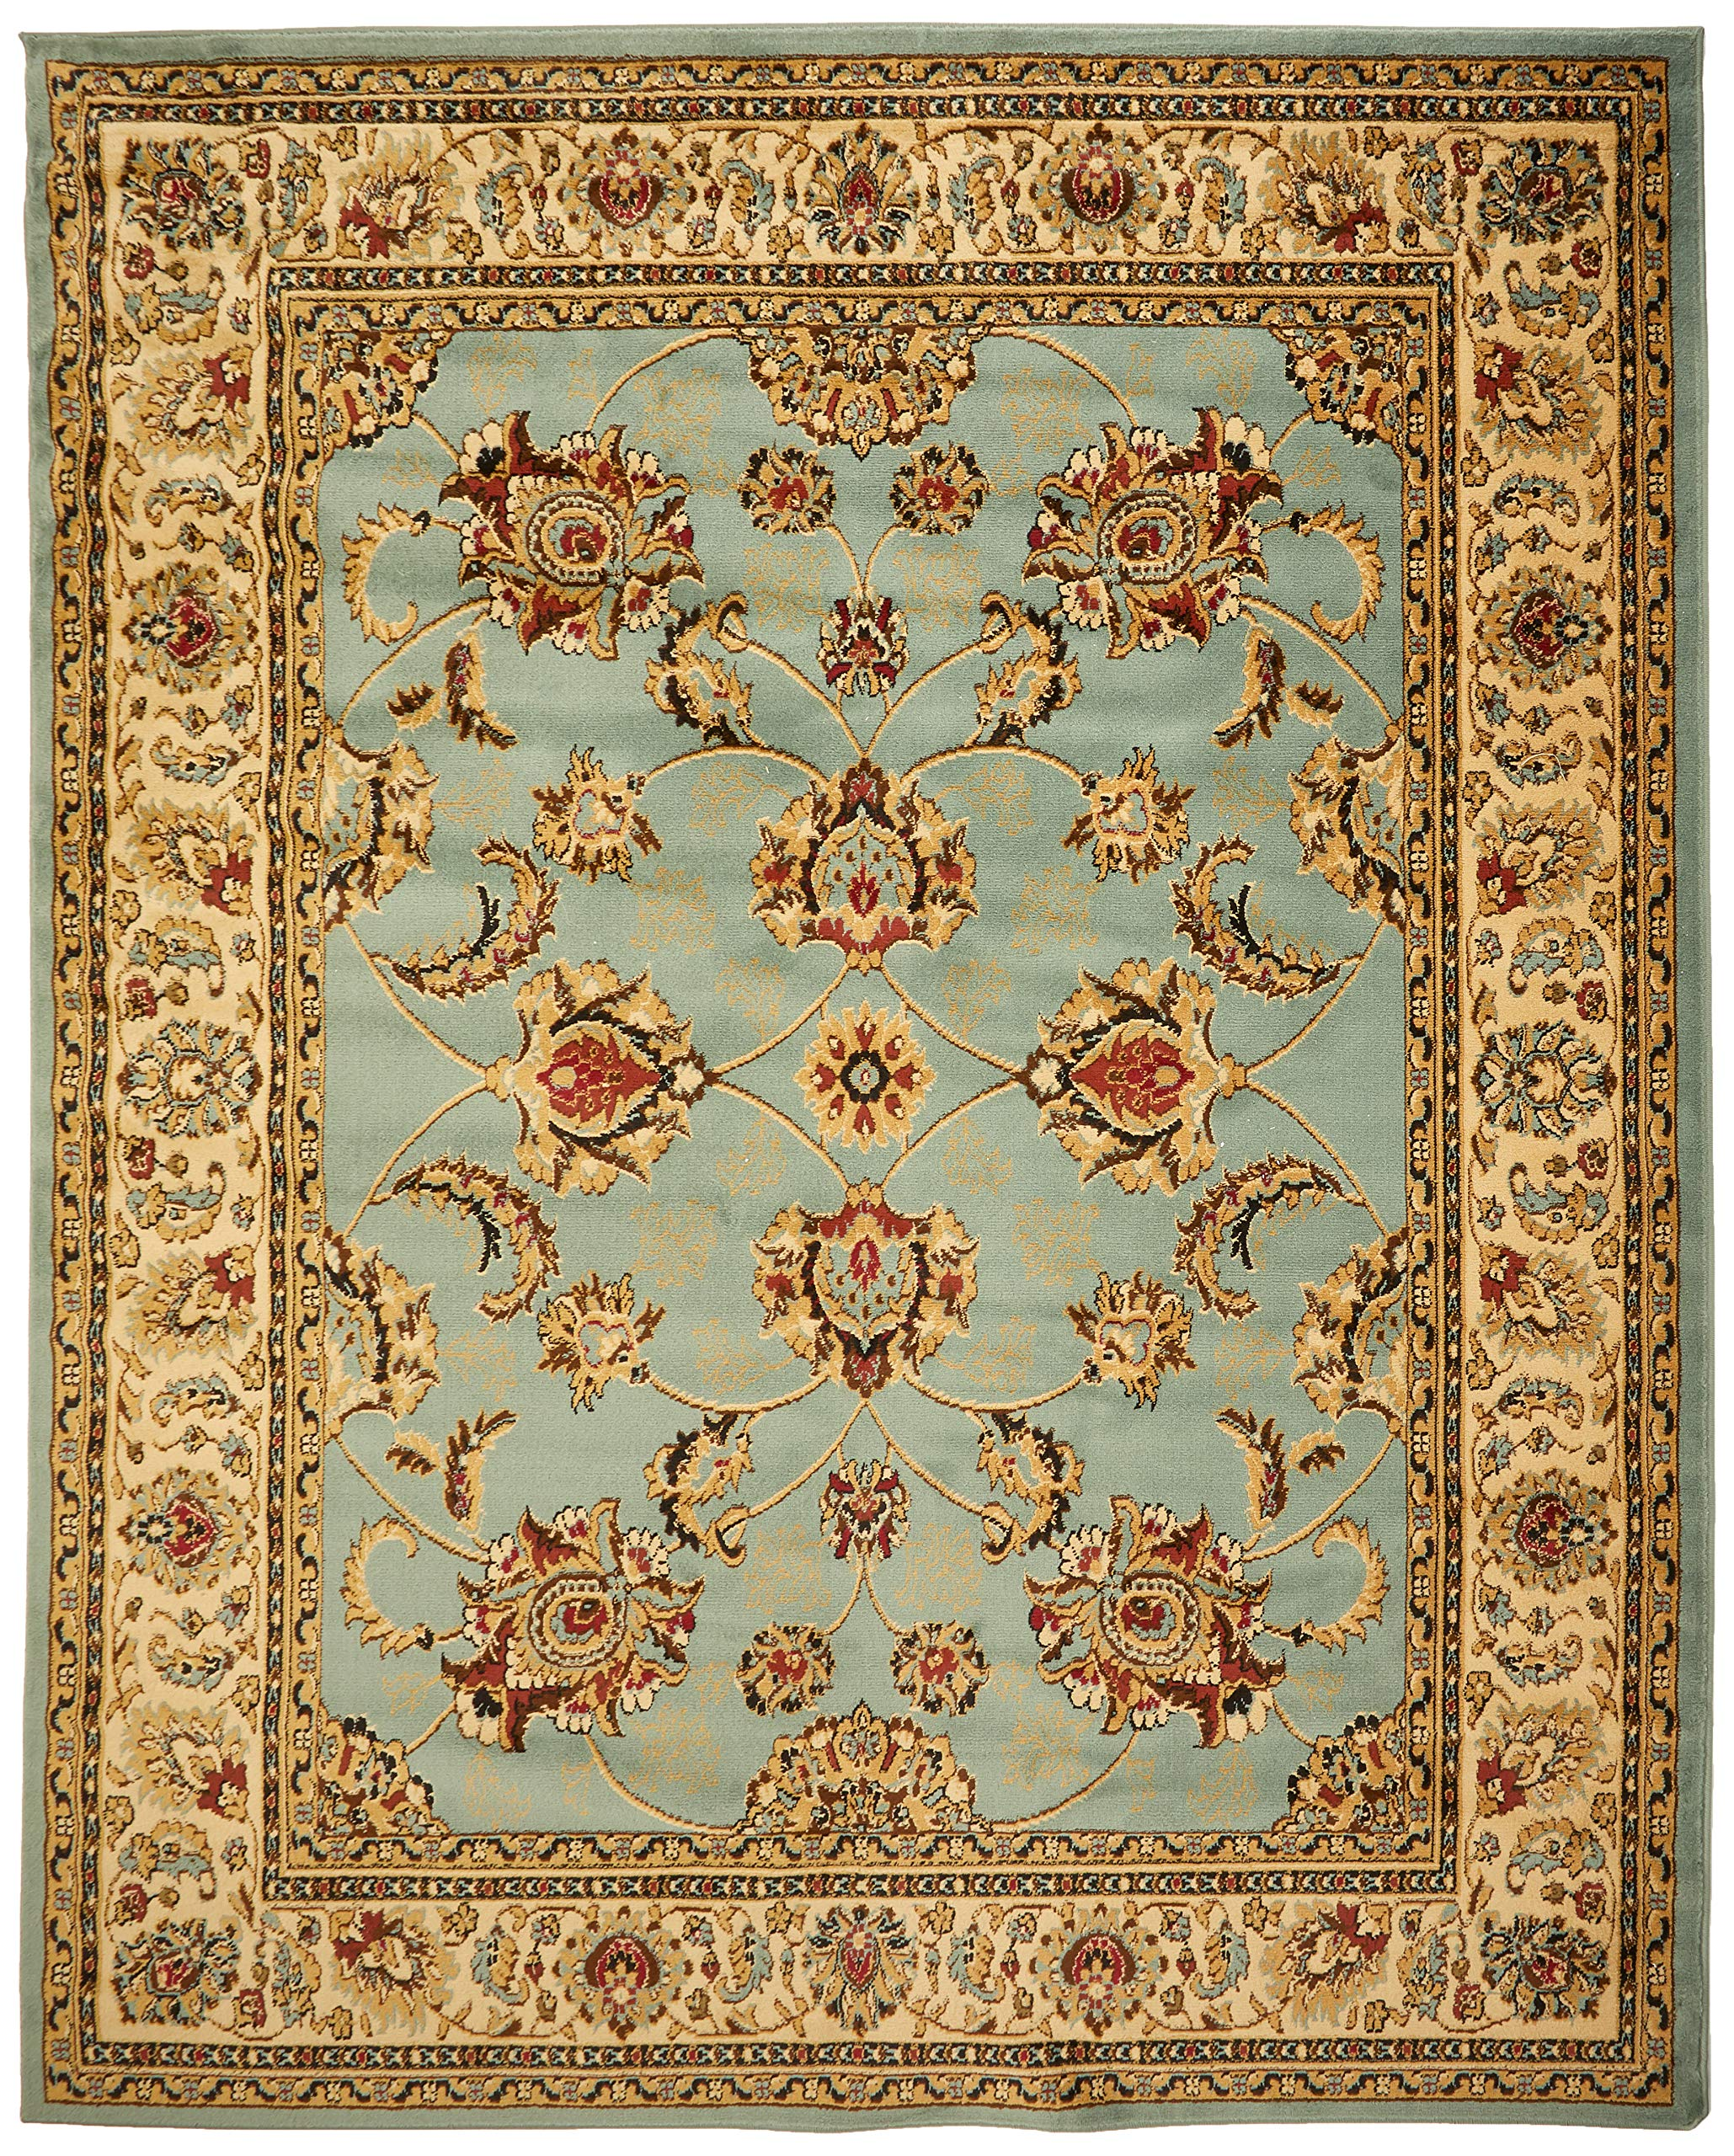 Sweet Home Stores King Collection Mahal Oriental Design Area Rug, 7'10''x9'10'', Seafoam